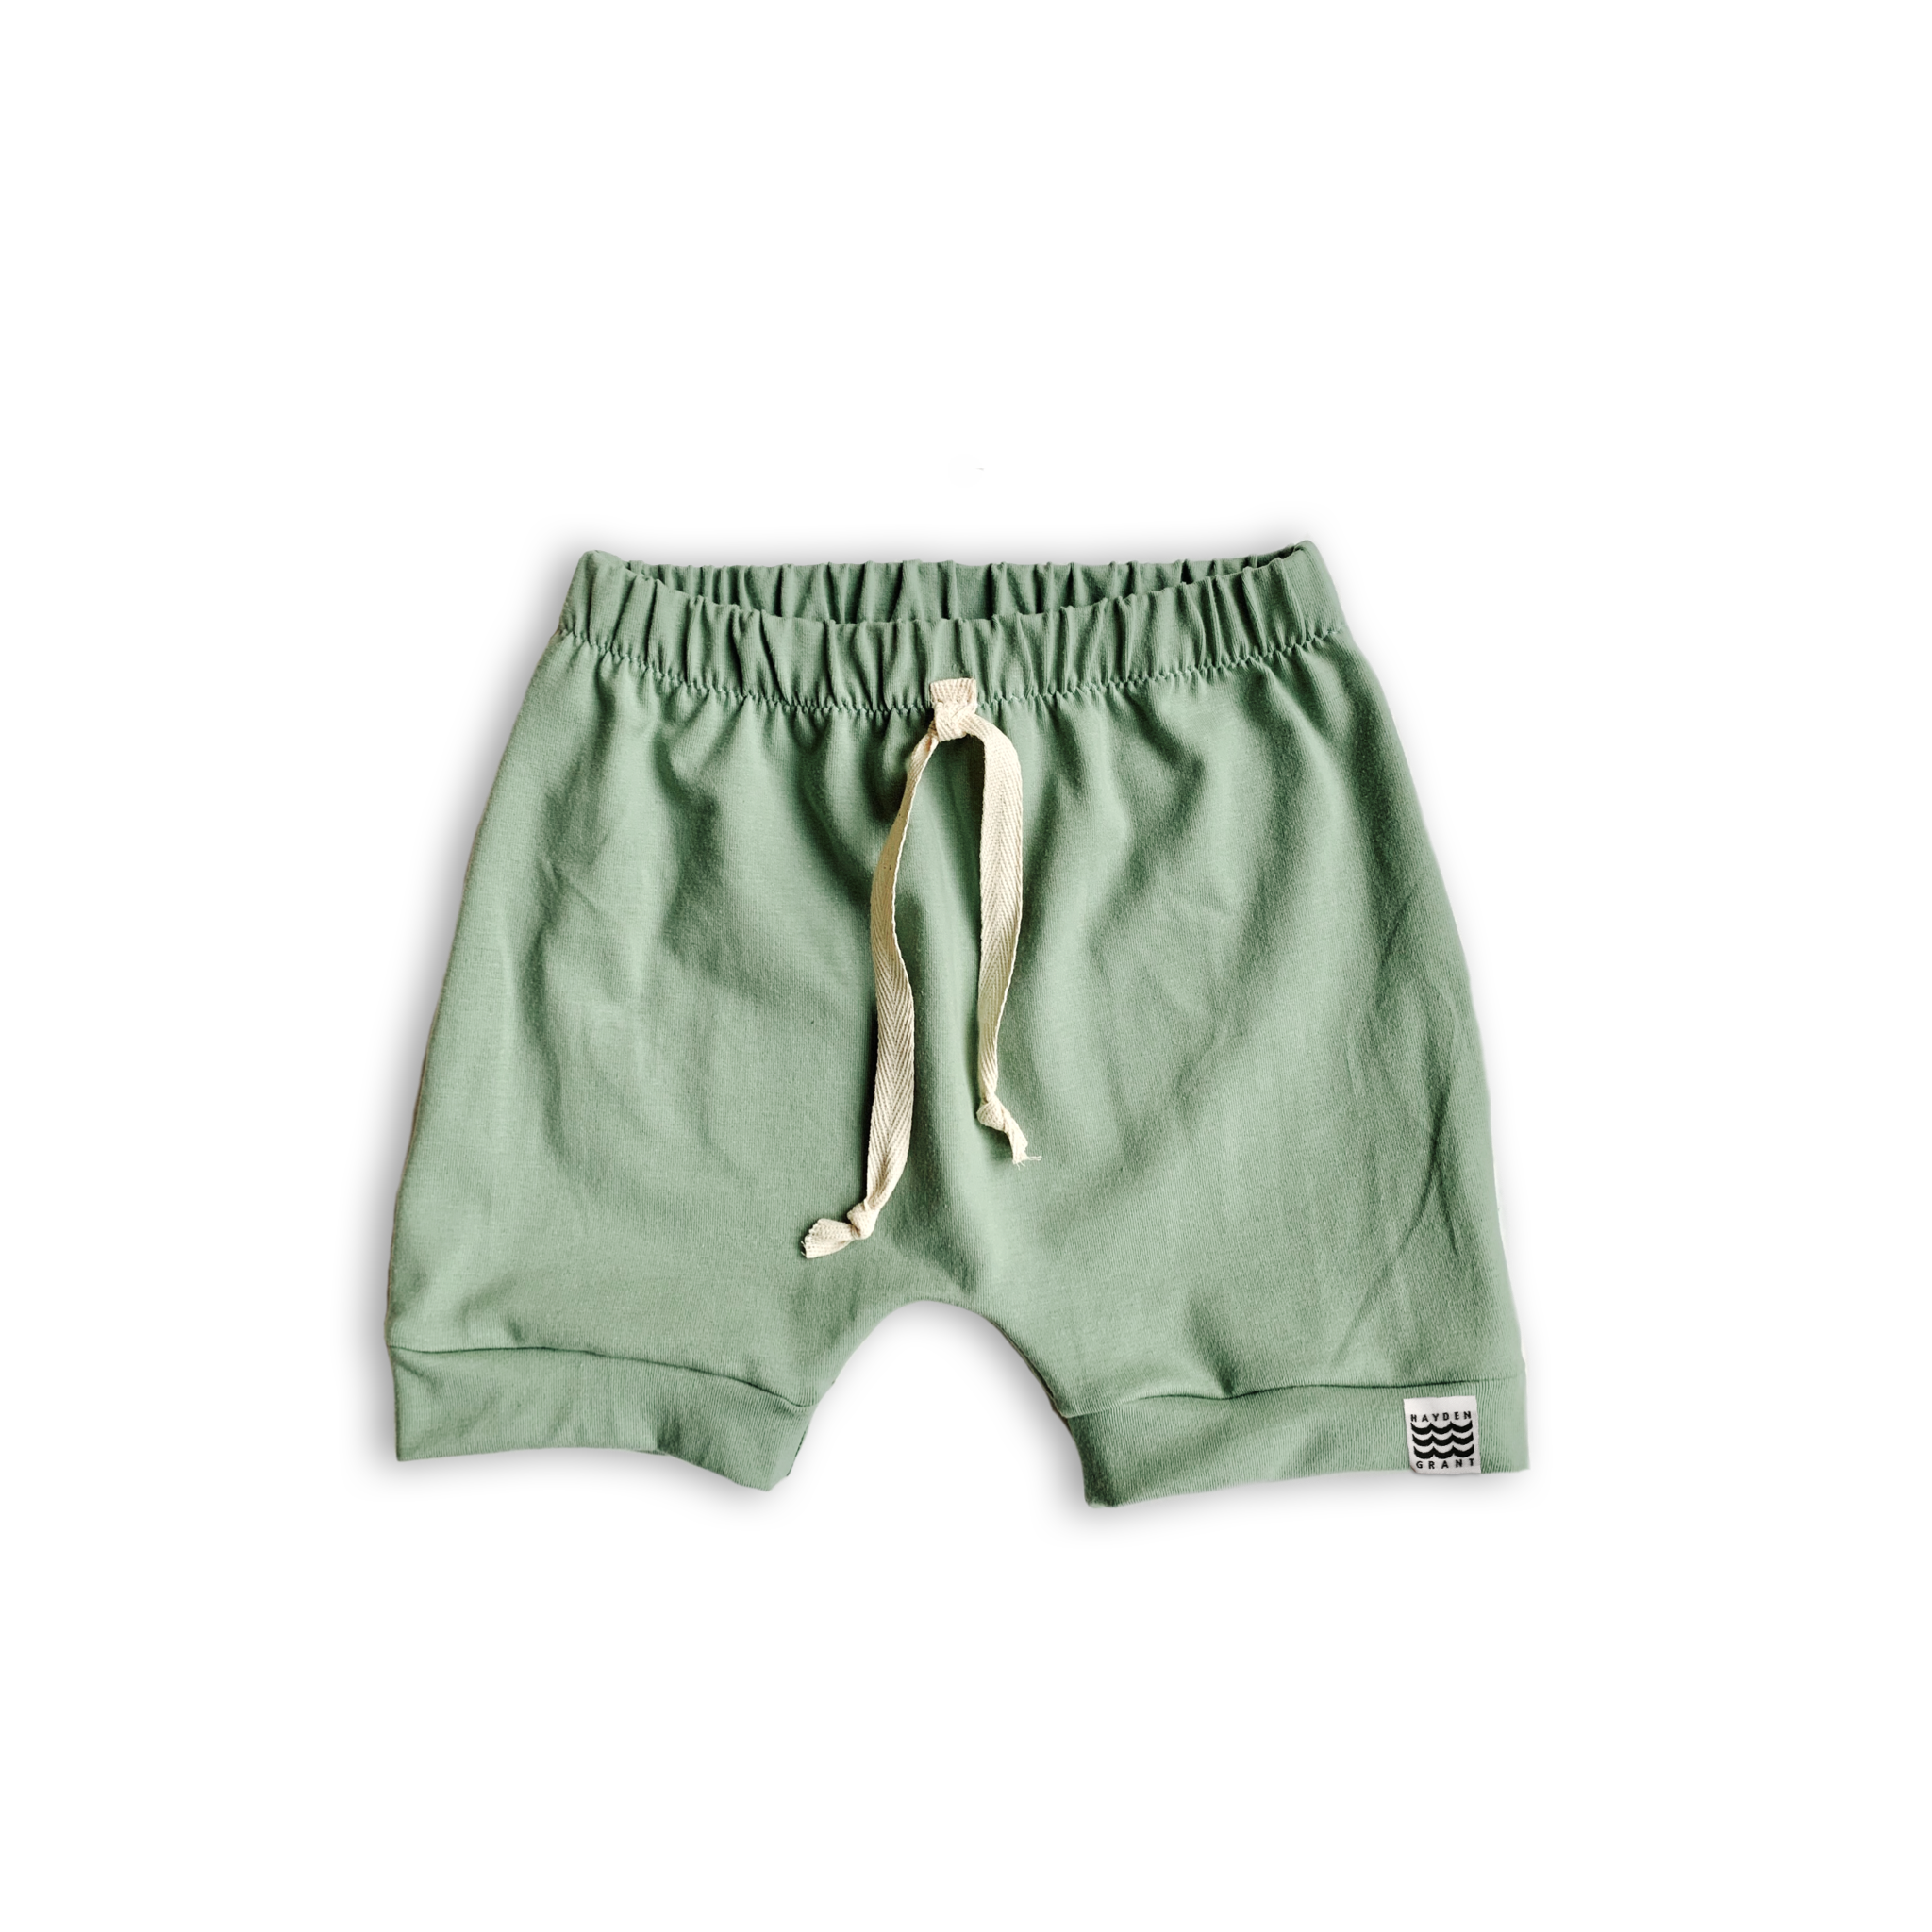 Boy's Crew Shorts in Green Tea